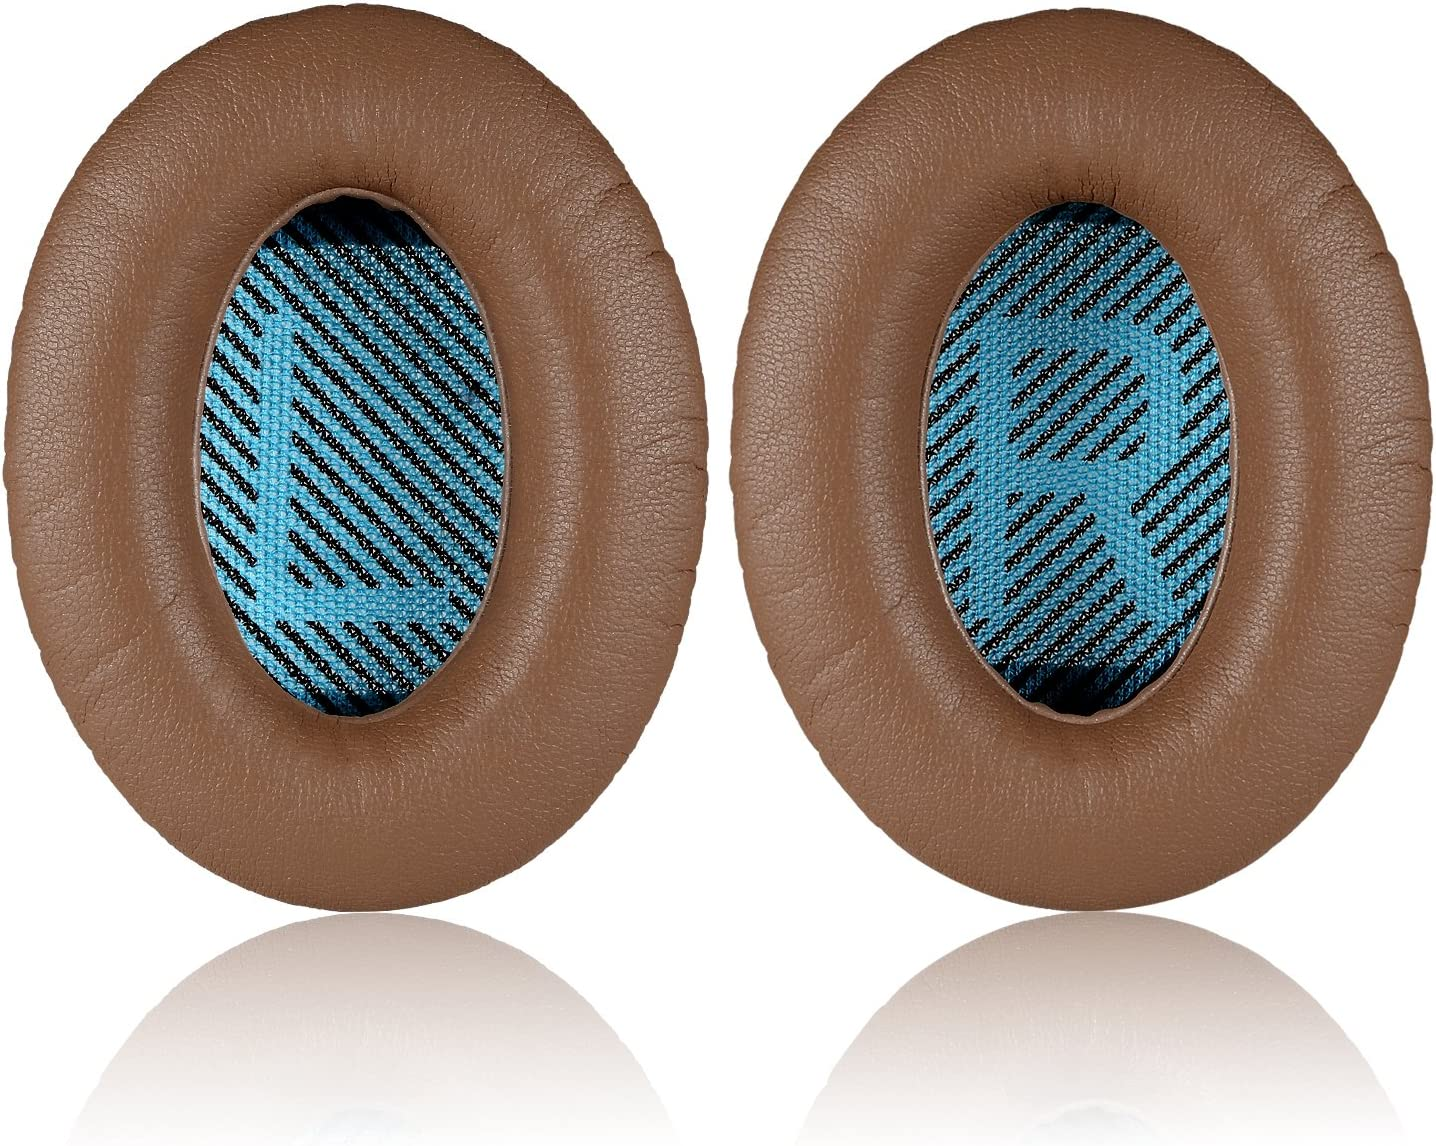 Sound True Brown QuietComfort2 QC25 Replacement Ear Pads Ae2 Sound Link Headphones JARMOR Ear Cushion Kit for Bose QuietComfort25 Ae2w Ae2i QC35 Quiet Comfort 15